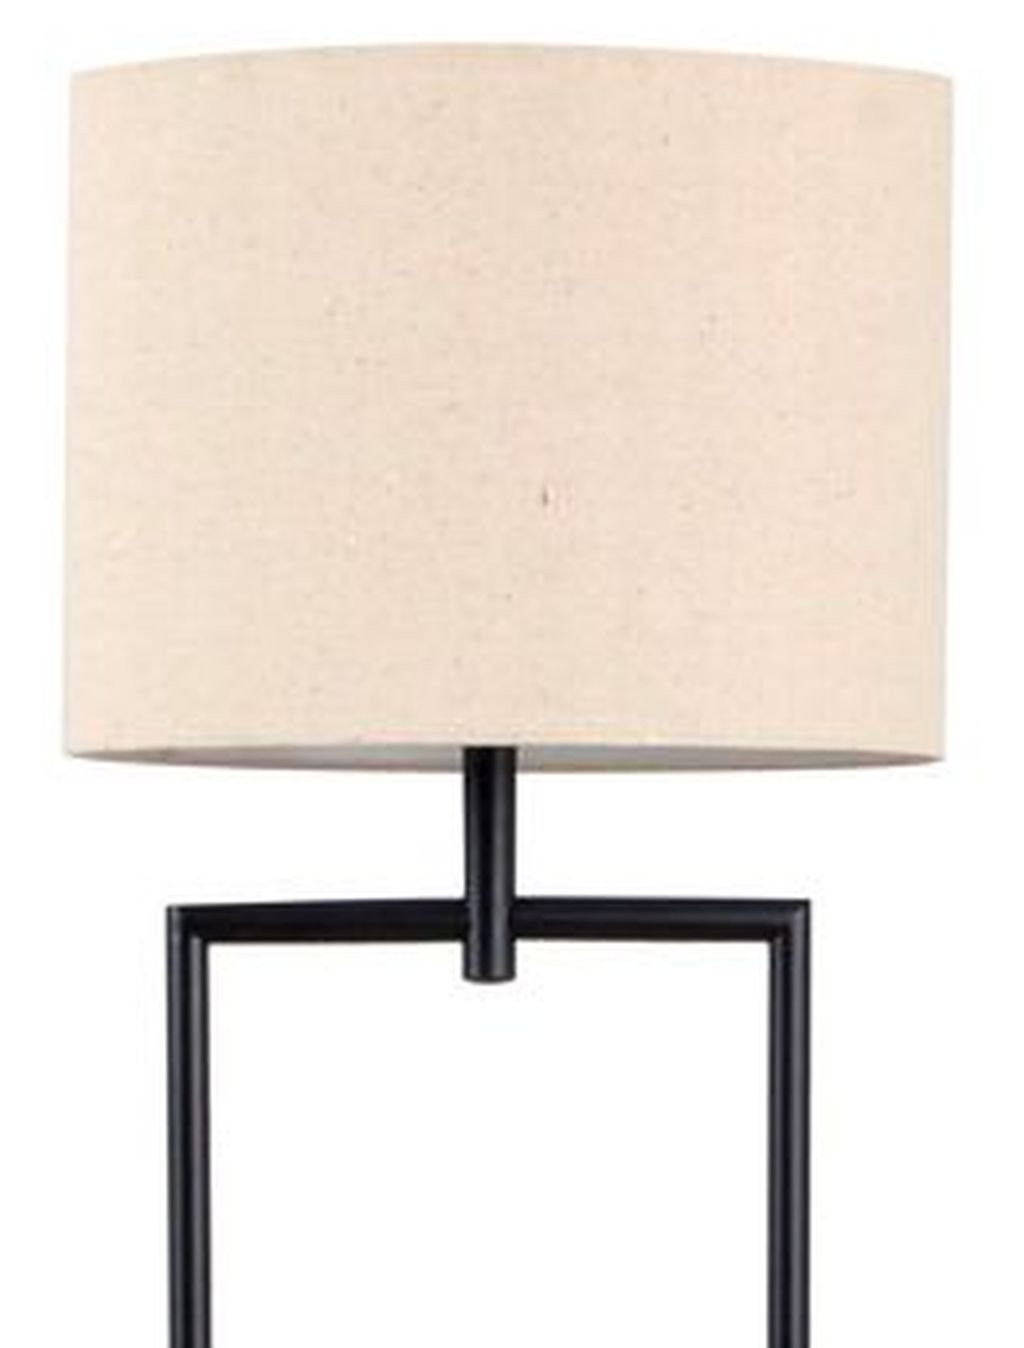 Catalina Lighting 19305 000 Transitional Etagere Floor Lamp With 3 Way Switch Shelves Ivory Beige Linen Shade